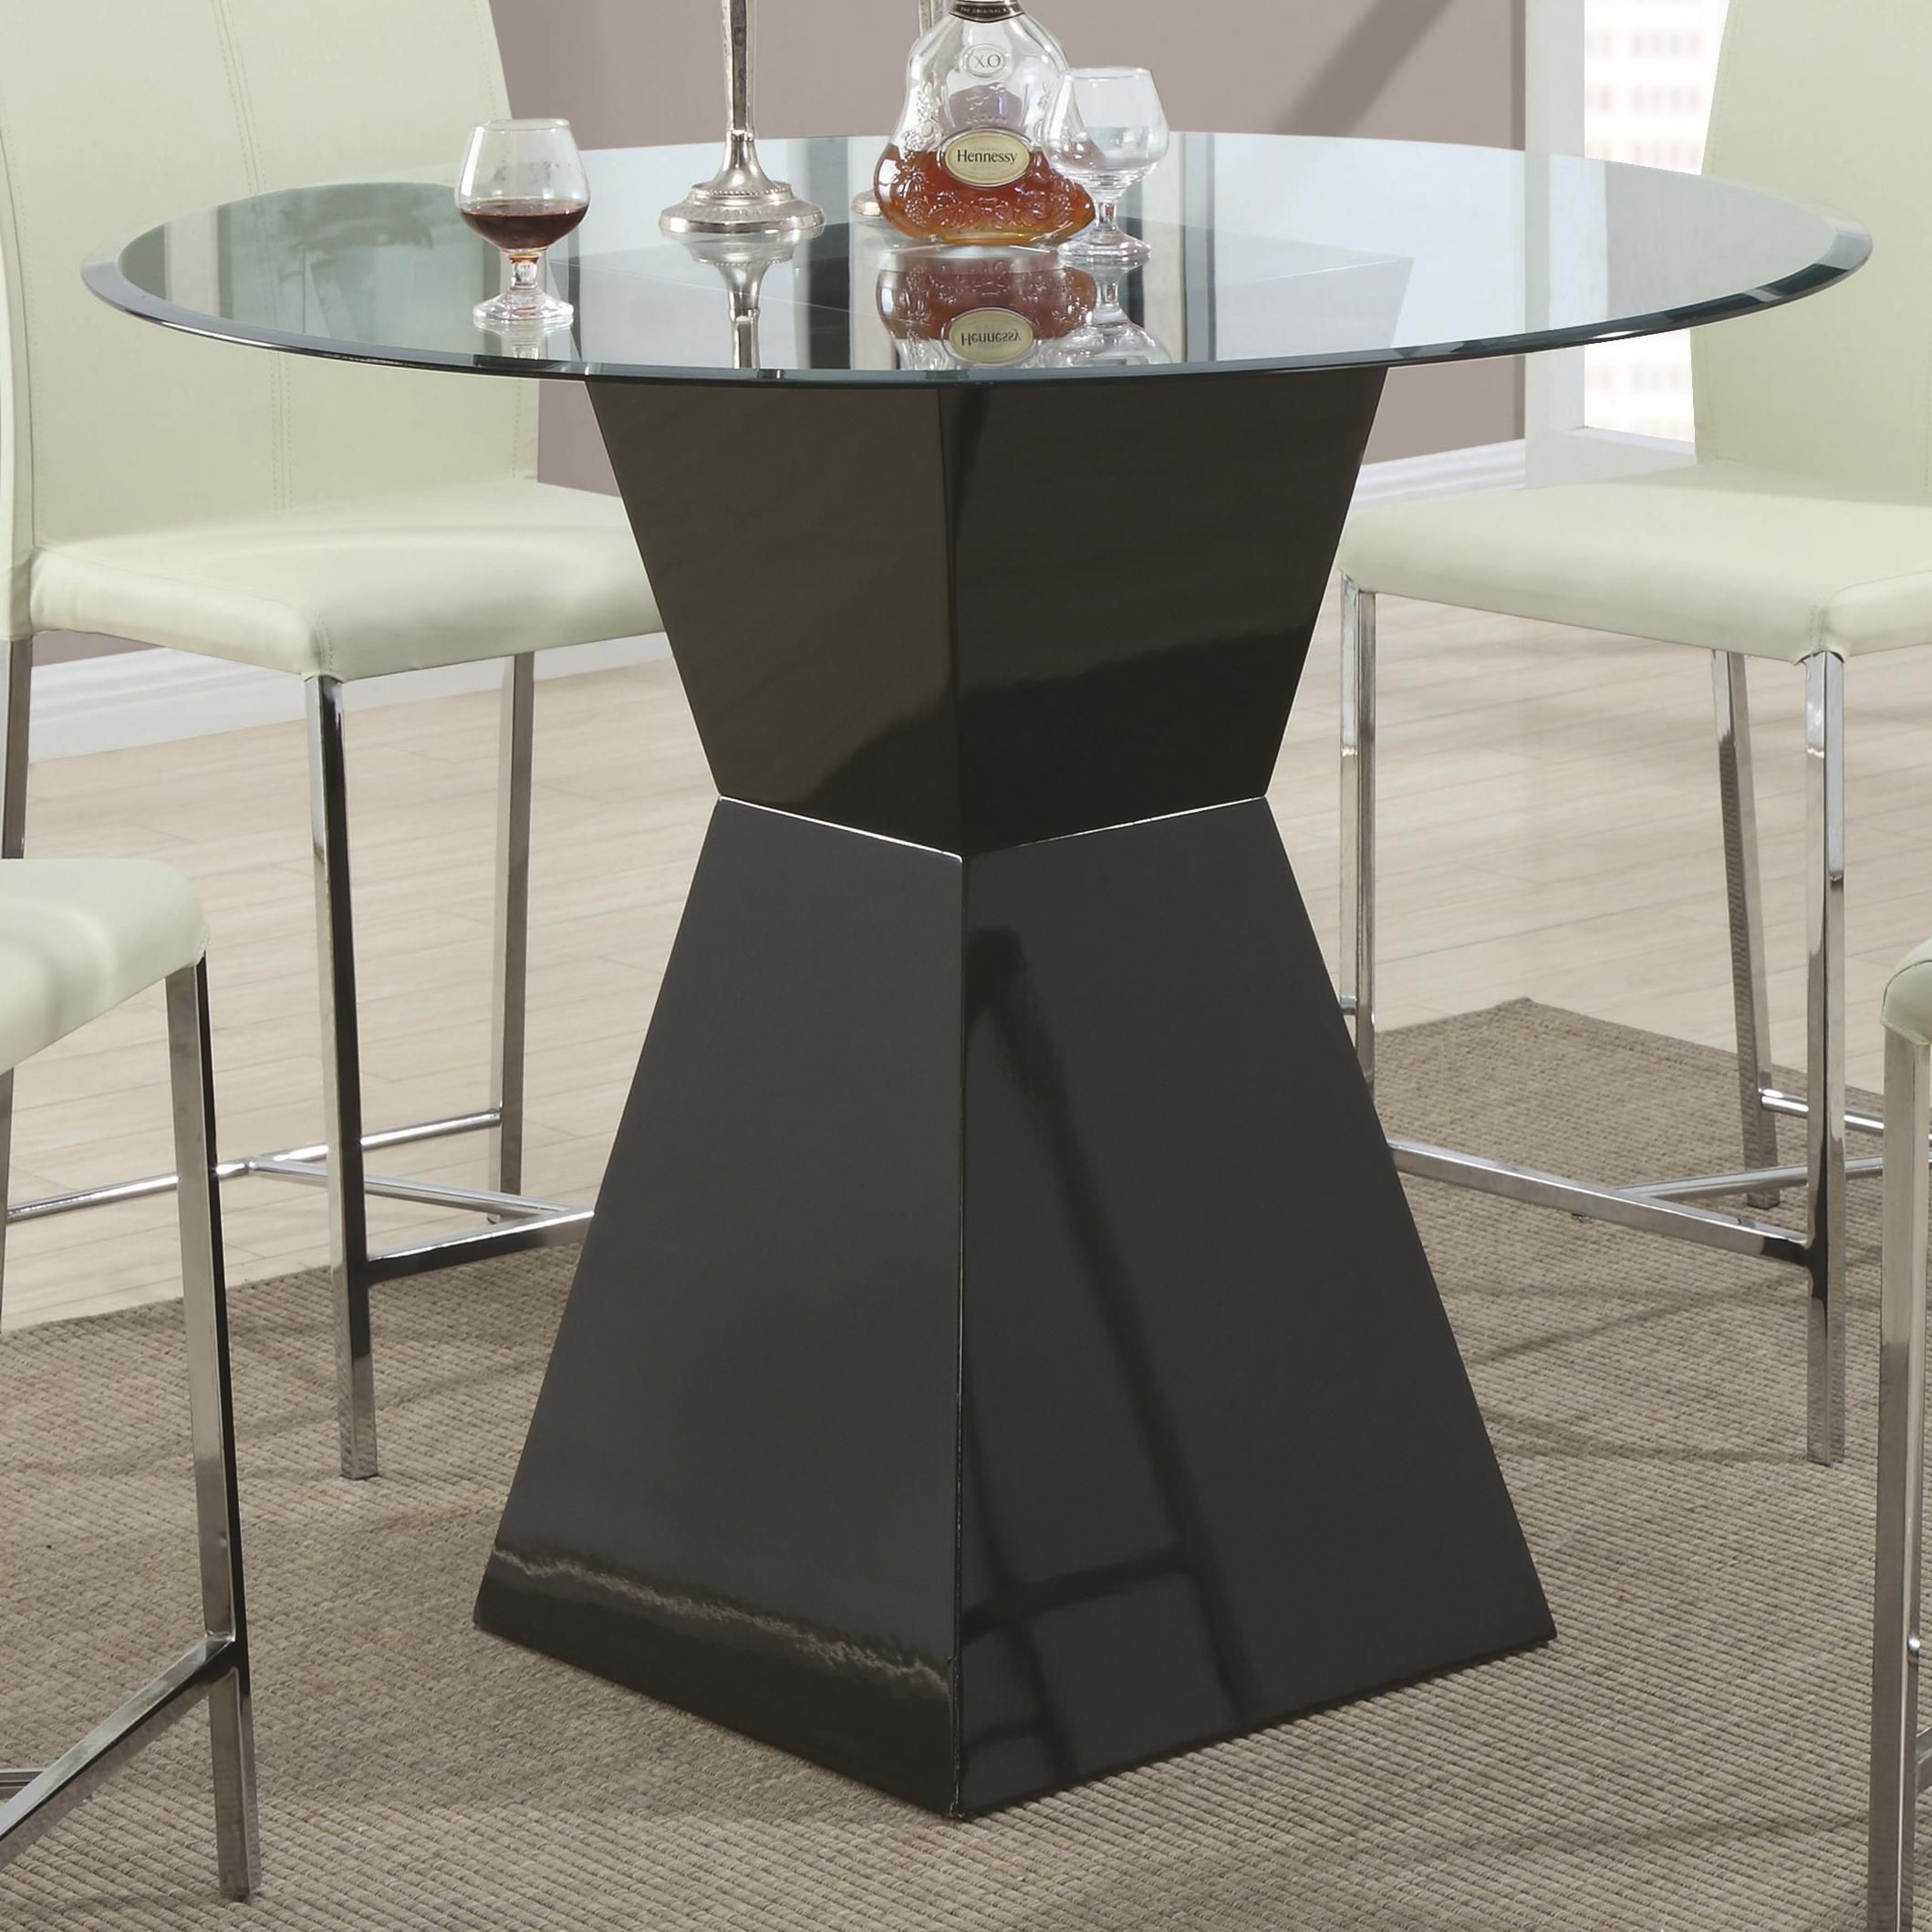 103736 - Ophelia Contemporary Glass Top Pub Table with Black Base ...